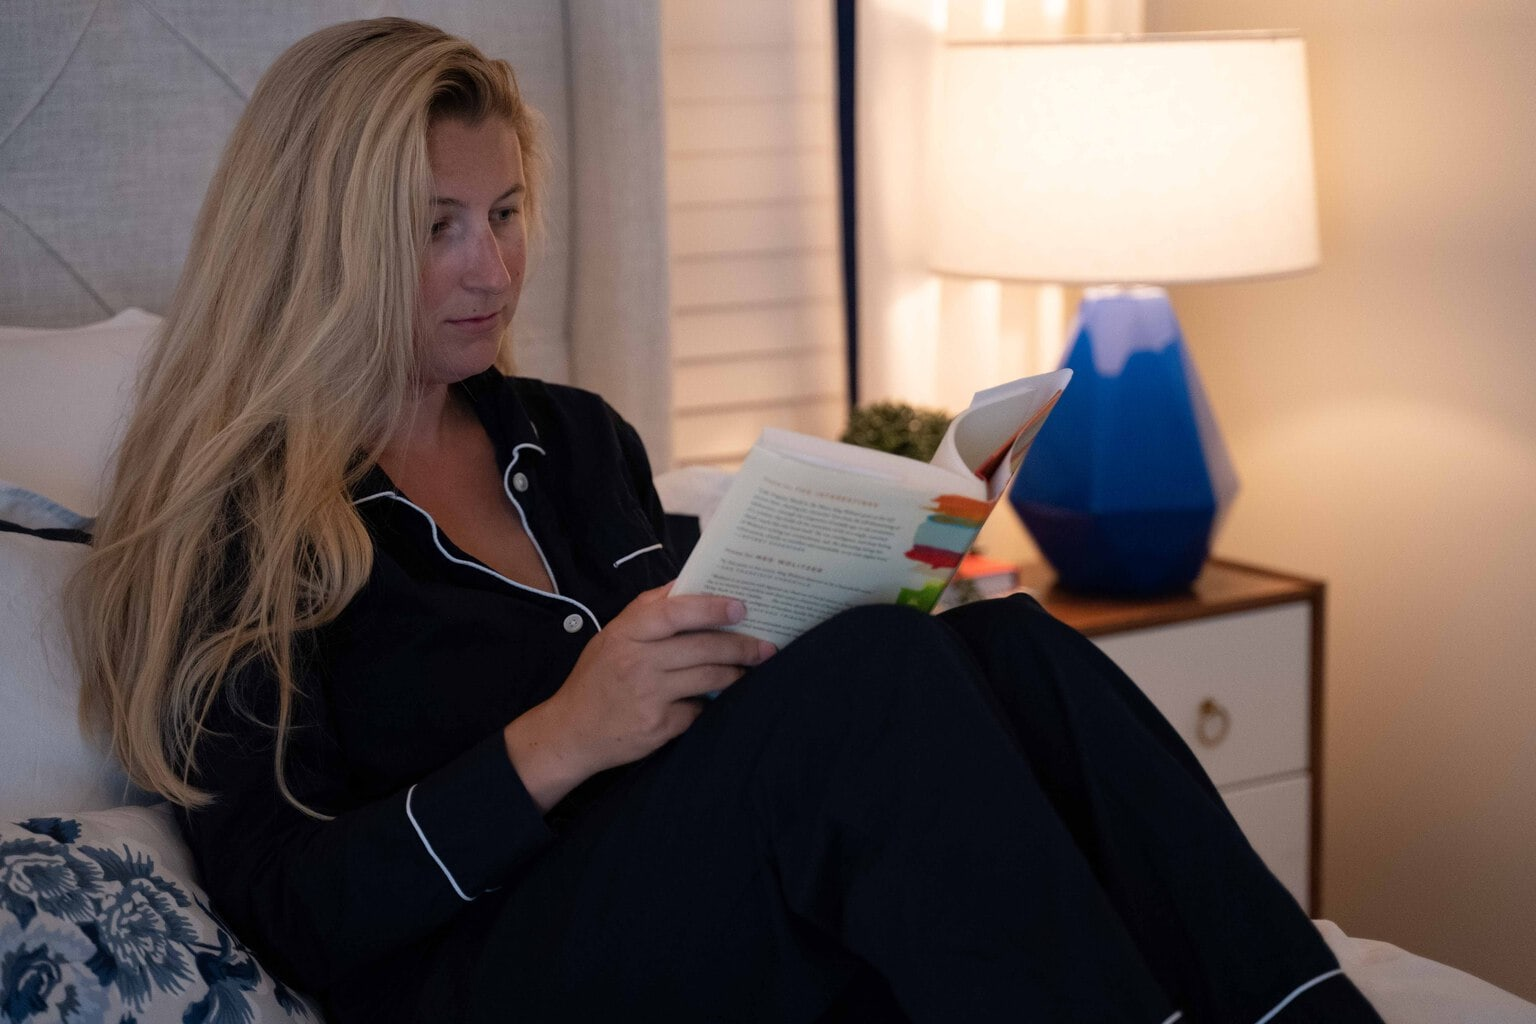 woman reading in comfy cozy relaxing bedroom